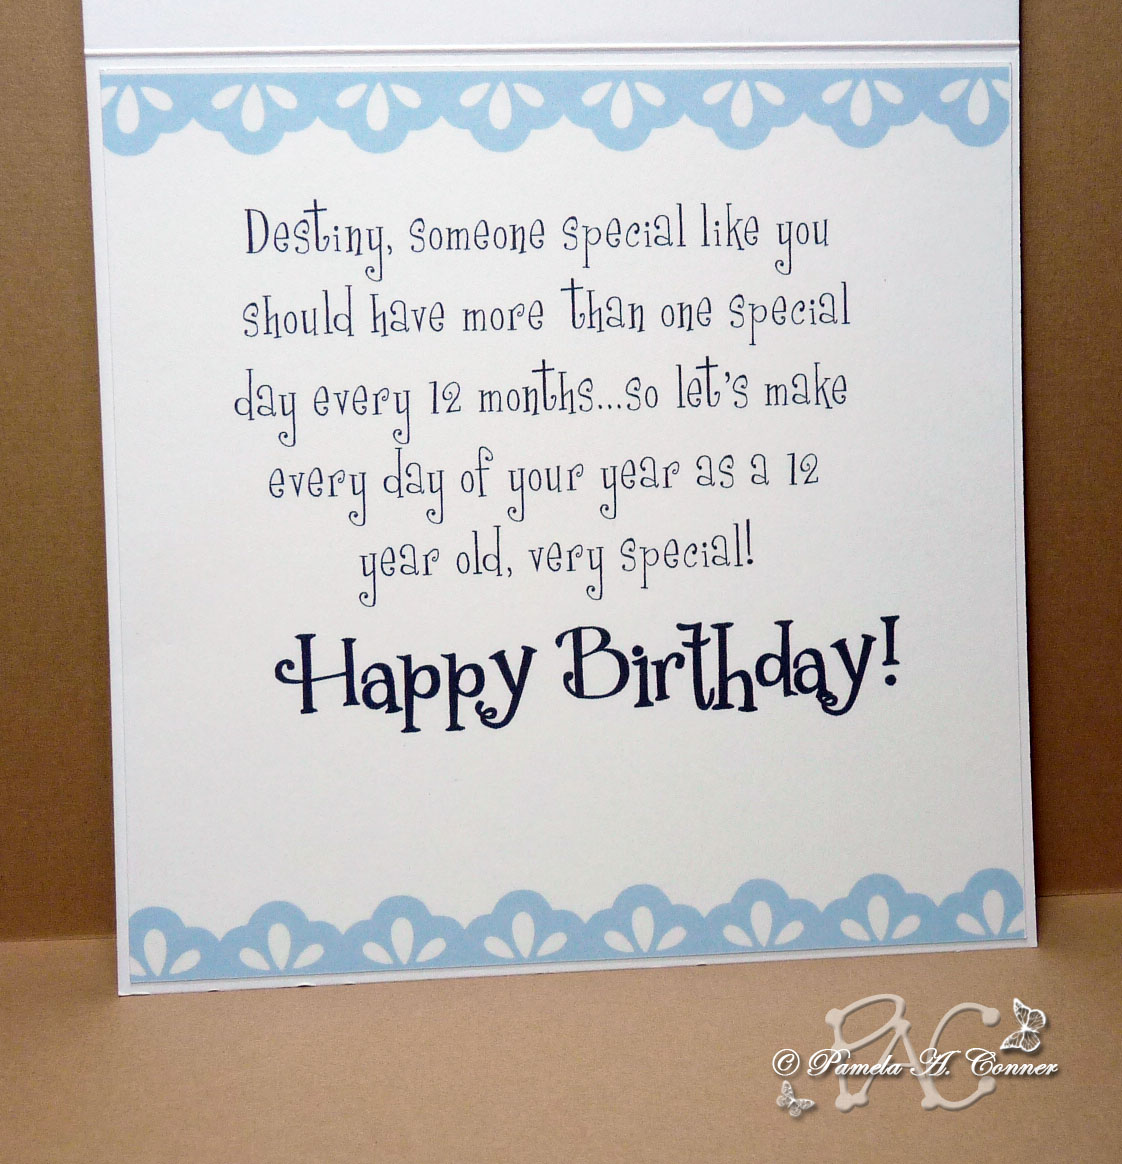 One Year Old Birthday Quotes: YorkieMom's Creative Corner: Birthday Card For 12 Year Old